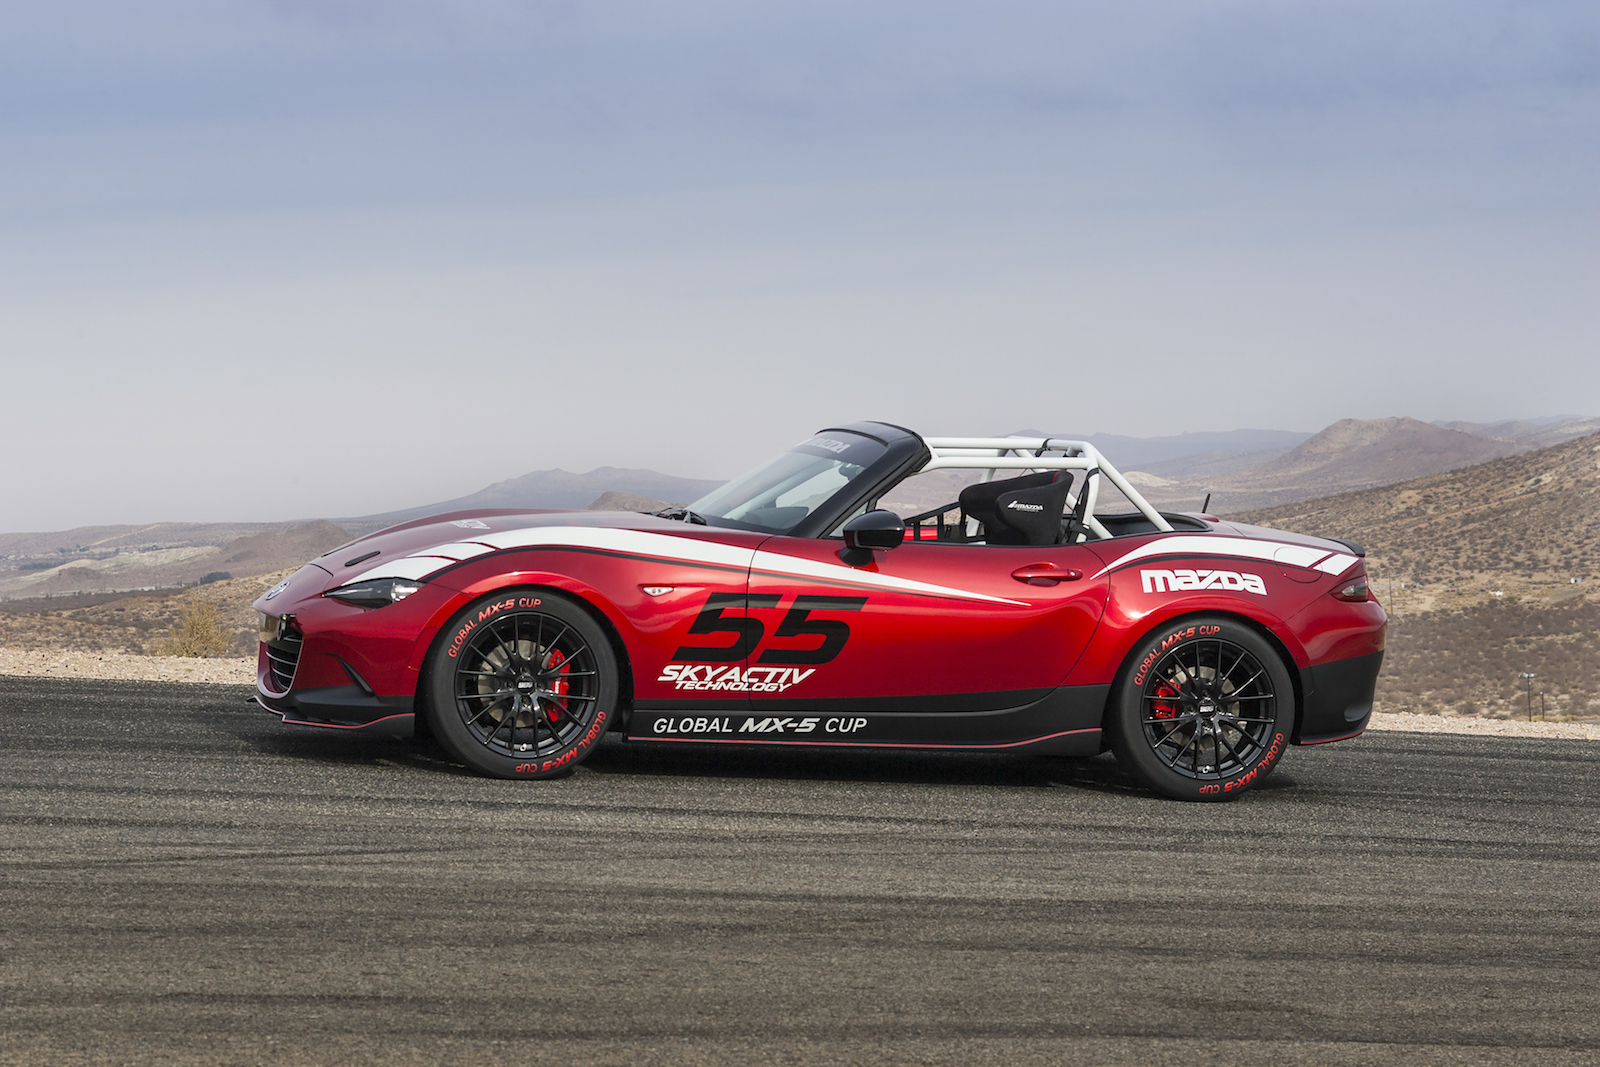 Mazda Announces New Global MX-5 Cup Race Series At SEMA